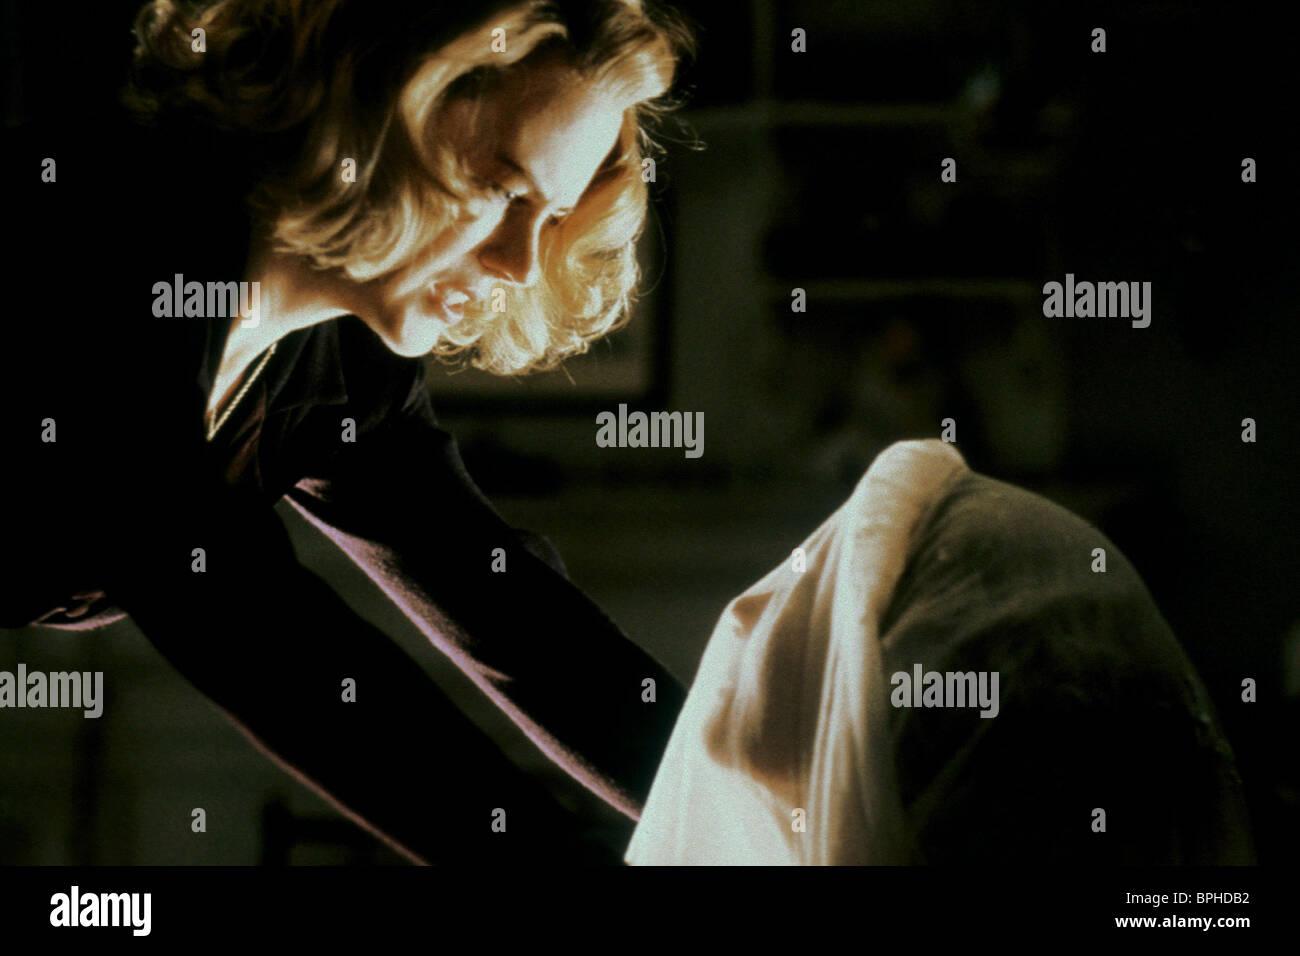 NICOLE KIDMAN THE OTHERS (2001 Stock Photo: 31116486 - Alamy